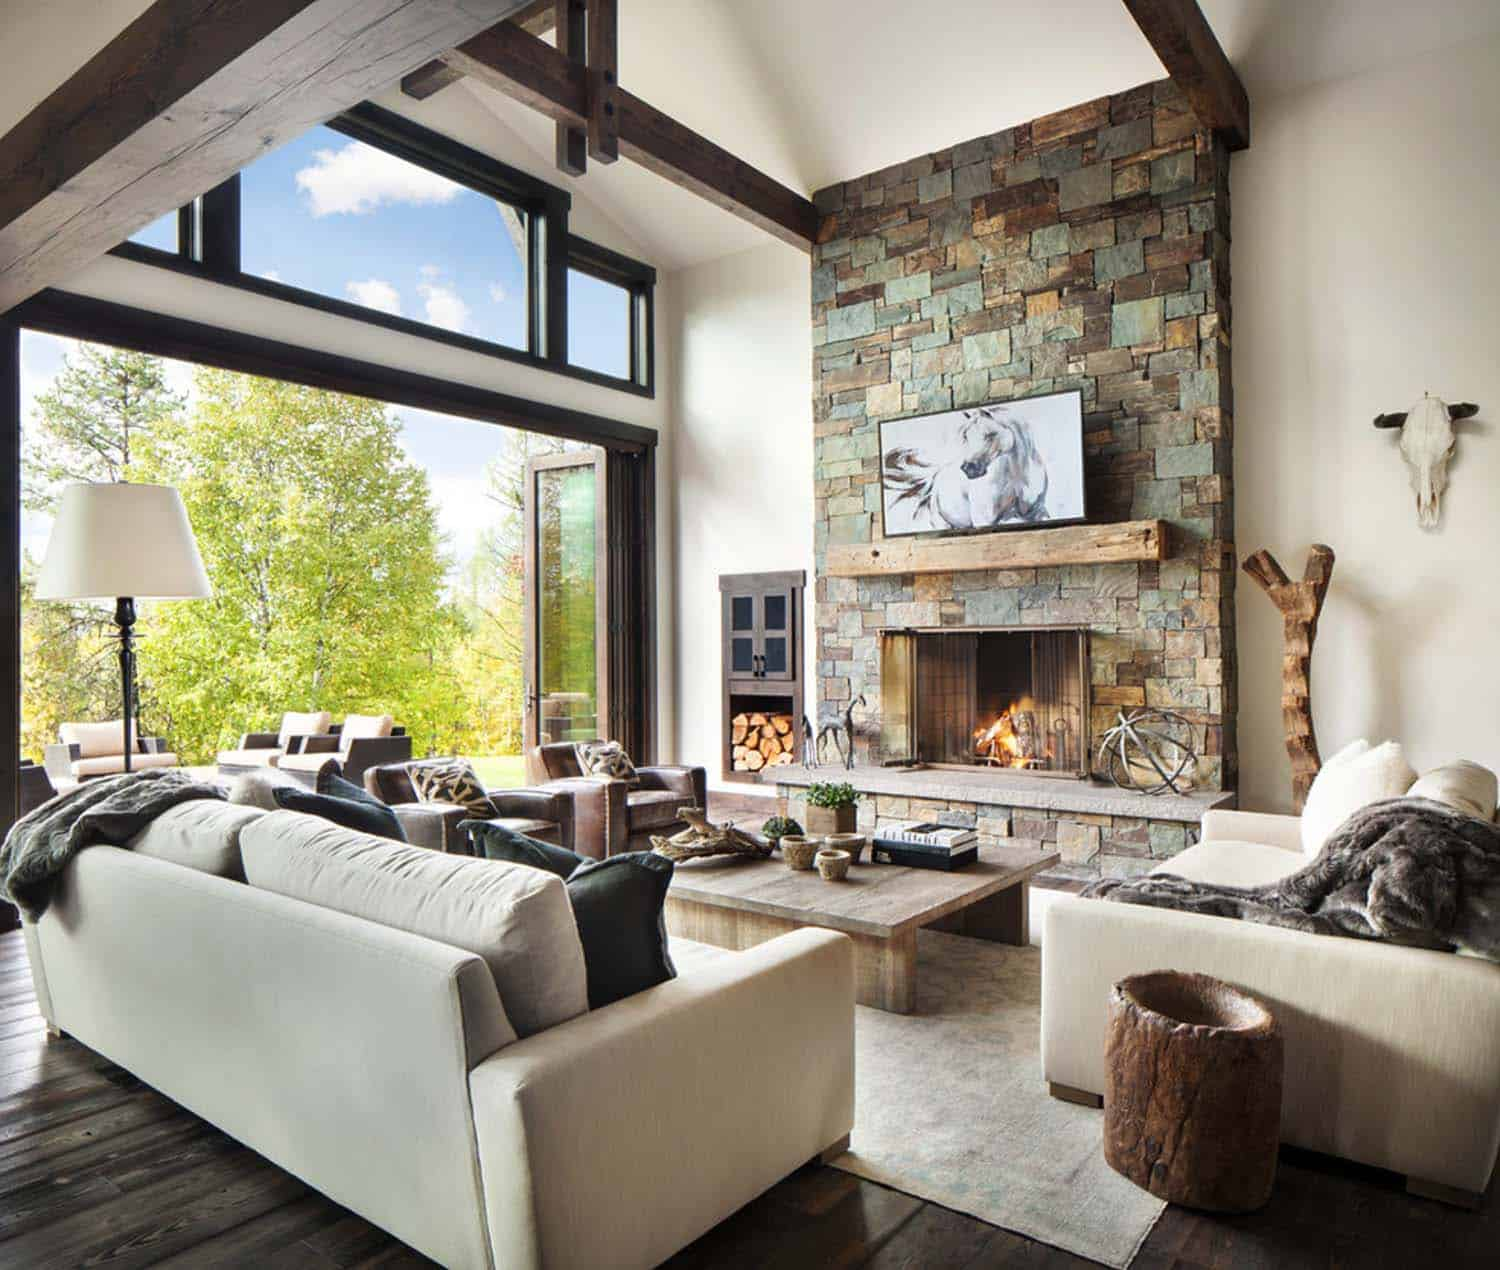 Modern Contemporary Home Interior Design: Rustic-modern Dwelling Nestled In The Northern Rocky Mountains